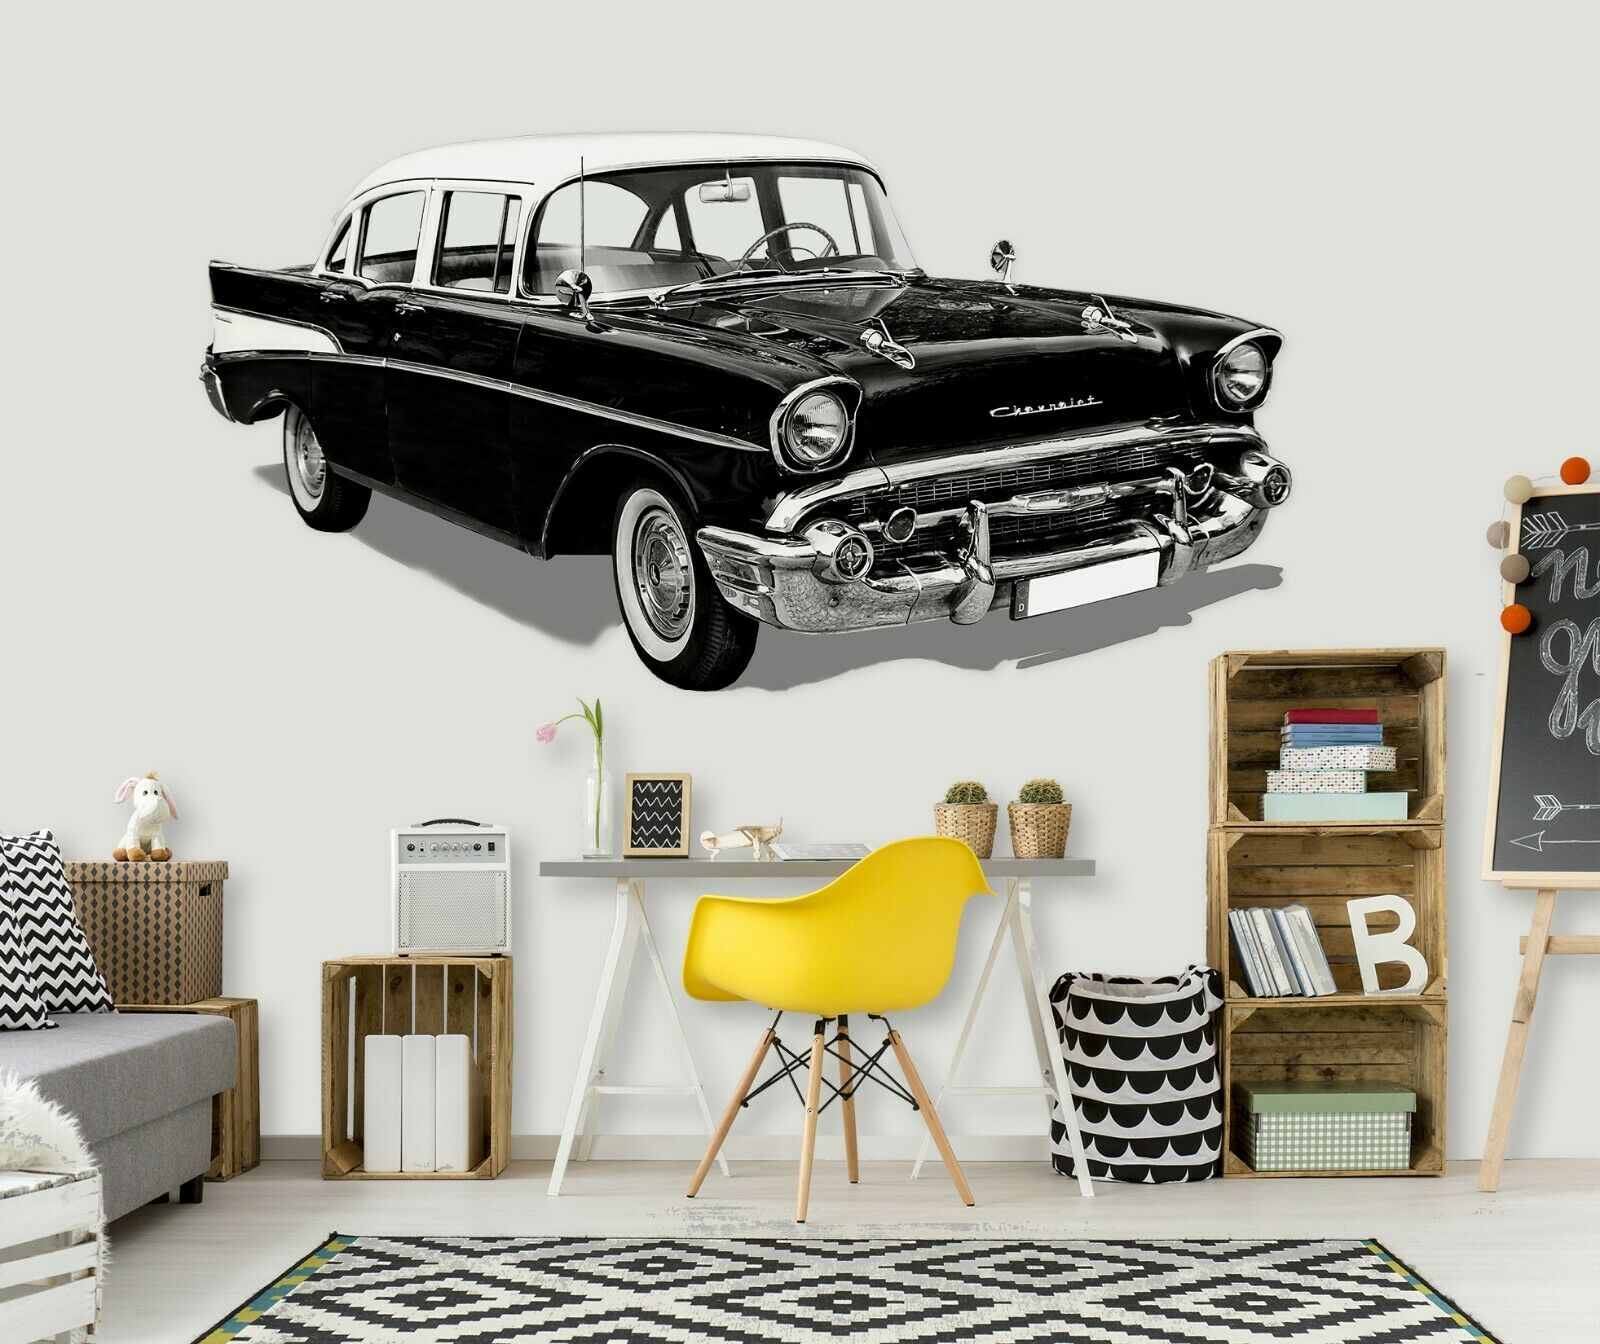 3D Oldtimer N03 Car Wallpaper Mural Poster Transport Wall Stickers Amy